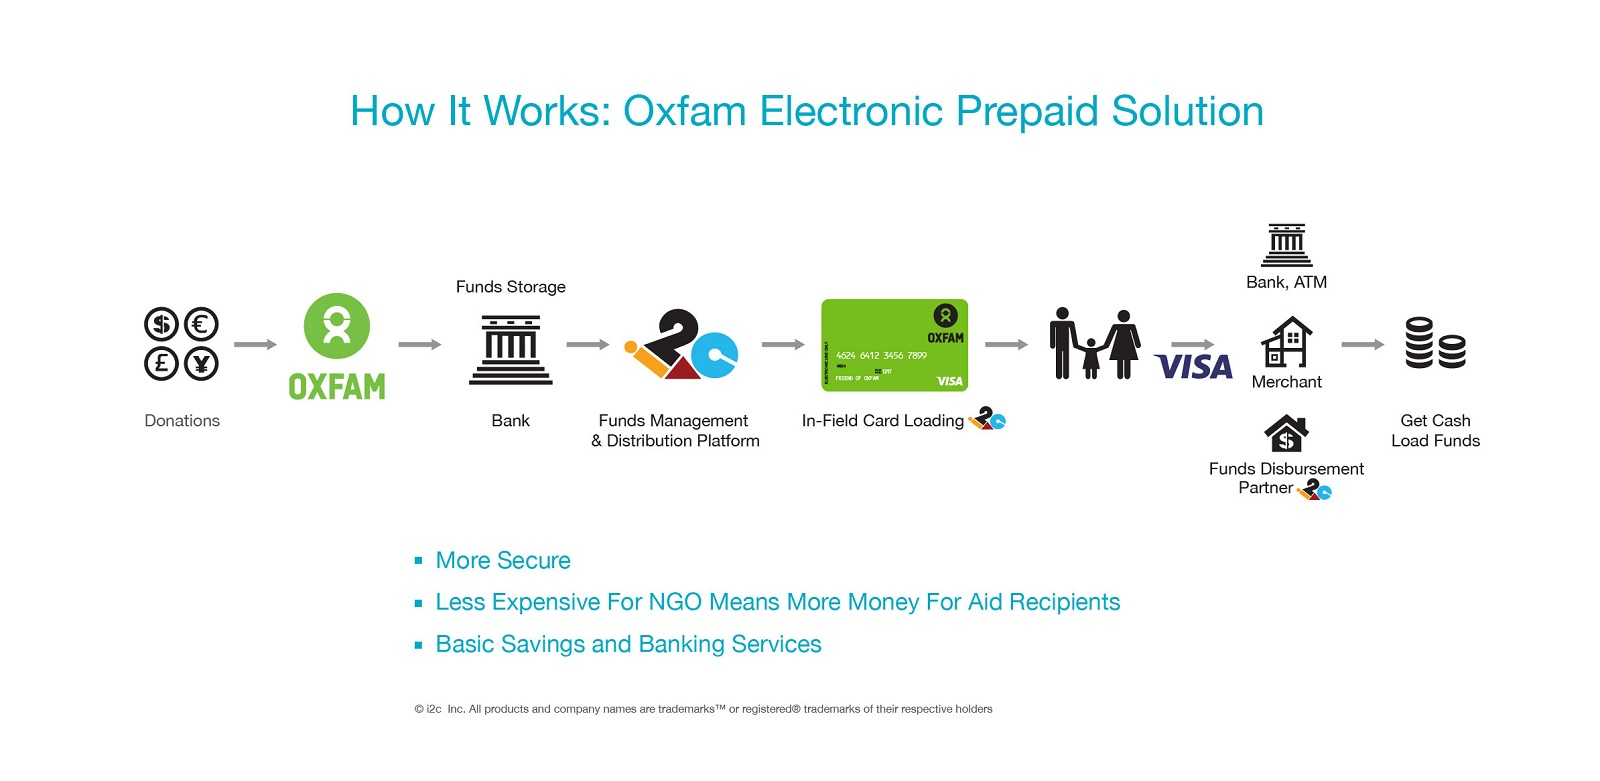 Oxfam Electronic Prepaid Solution